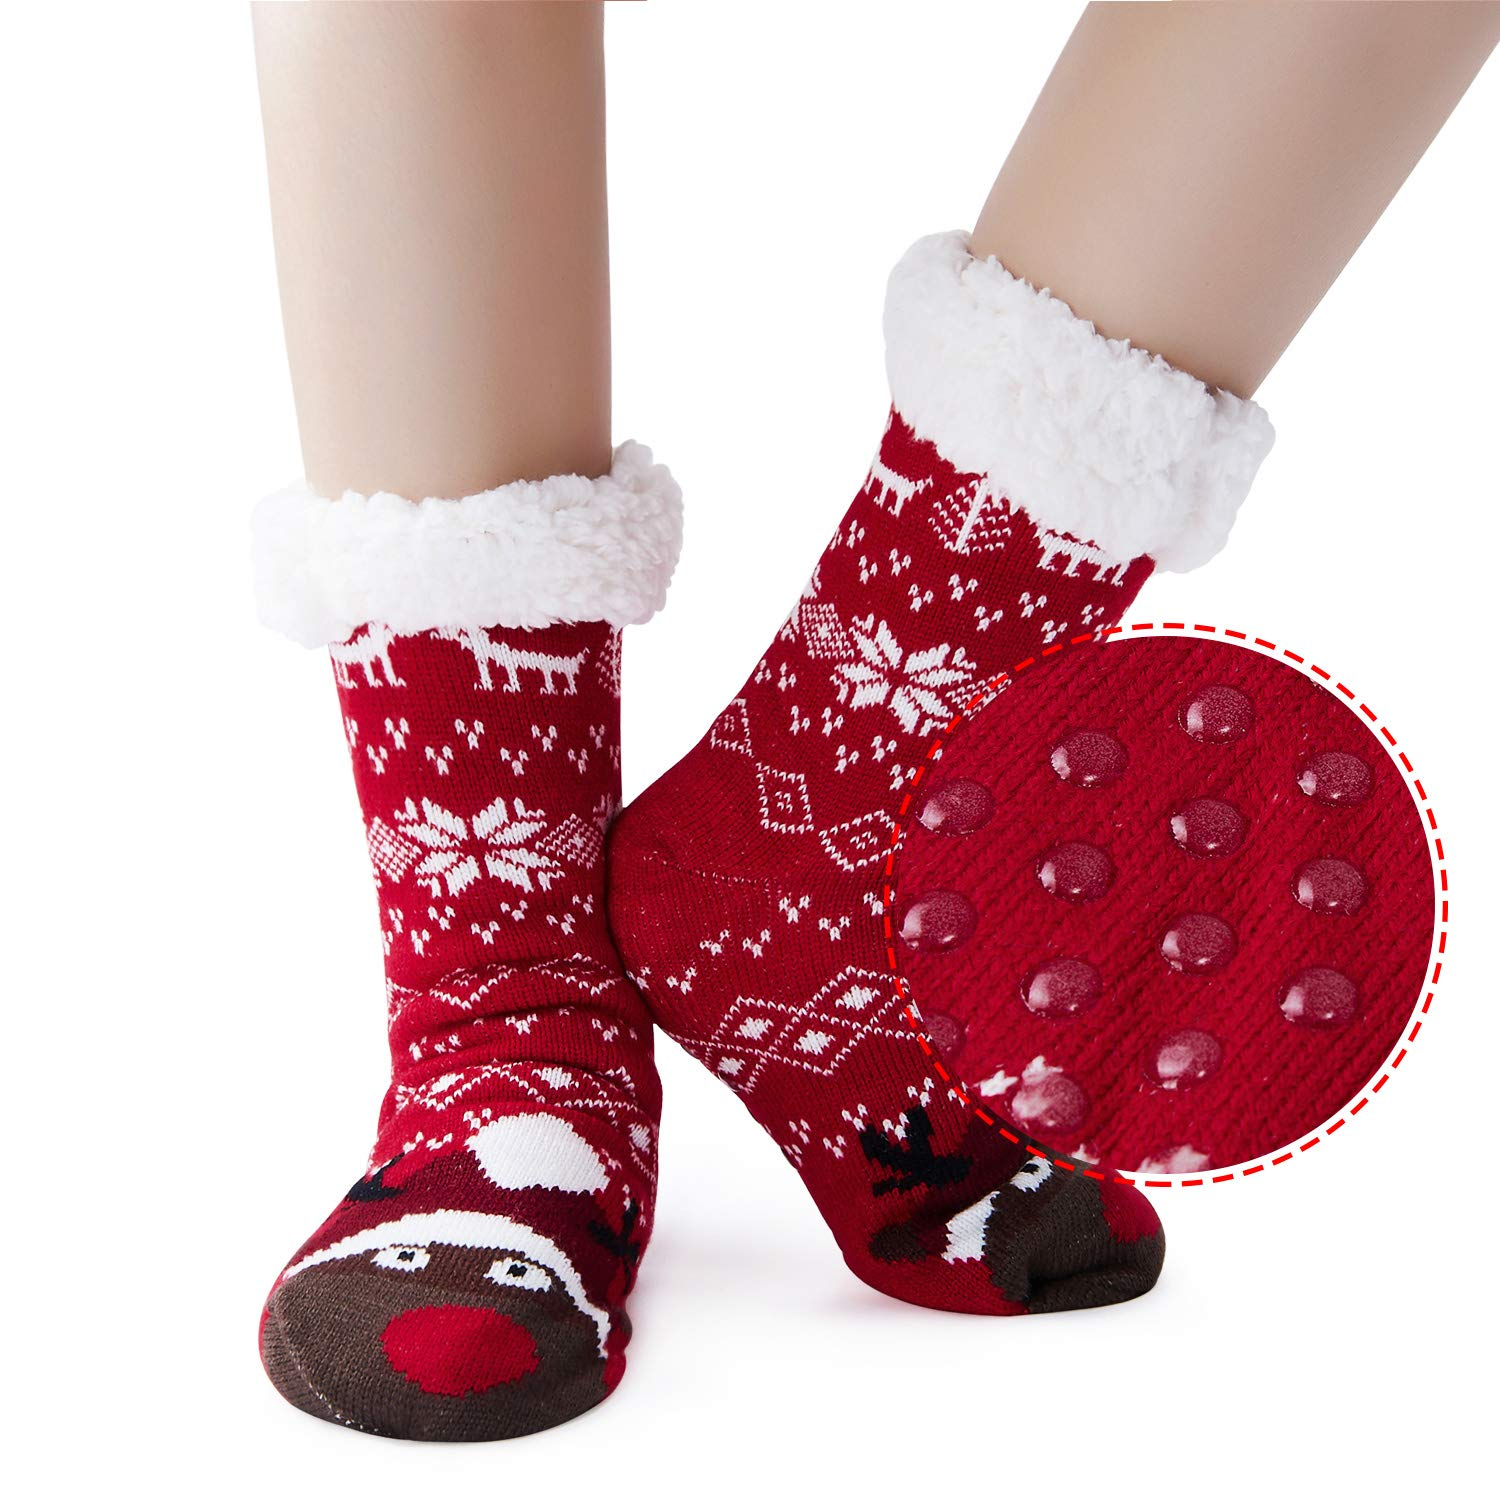 Uideazone Womens Socks for Christmas Thick Knit Fleece Lined Cozy Thermal Fuzzy Xmas Slipper Socks with Grippers